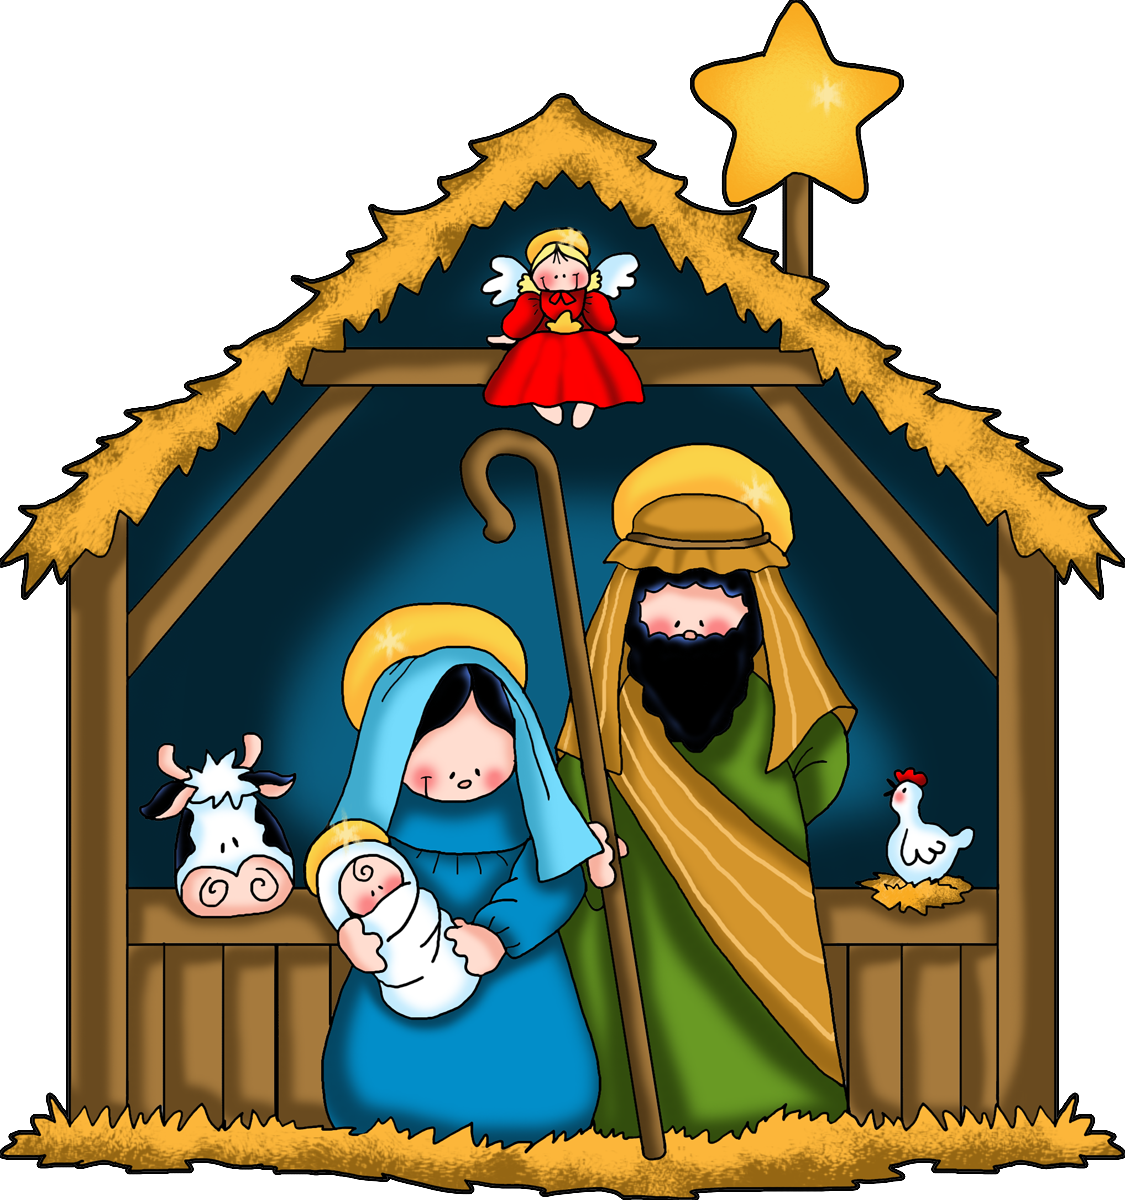 download clipart, jesus christmas cliparts download clip art #31779